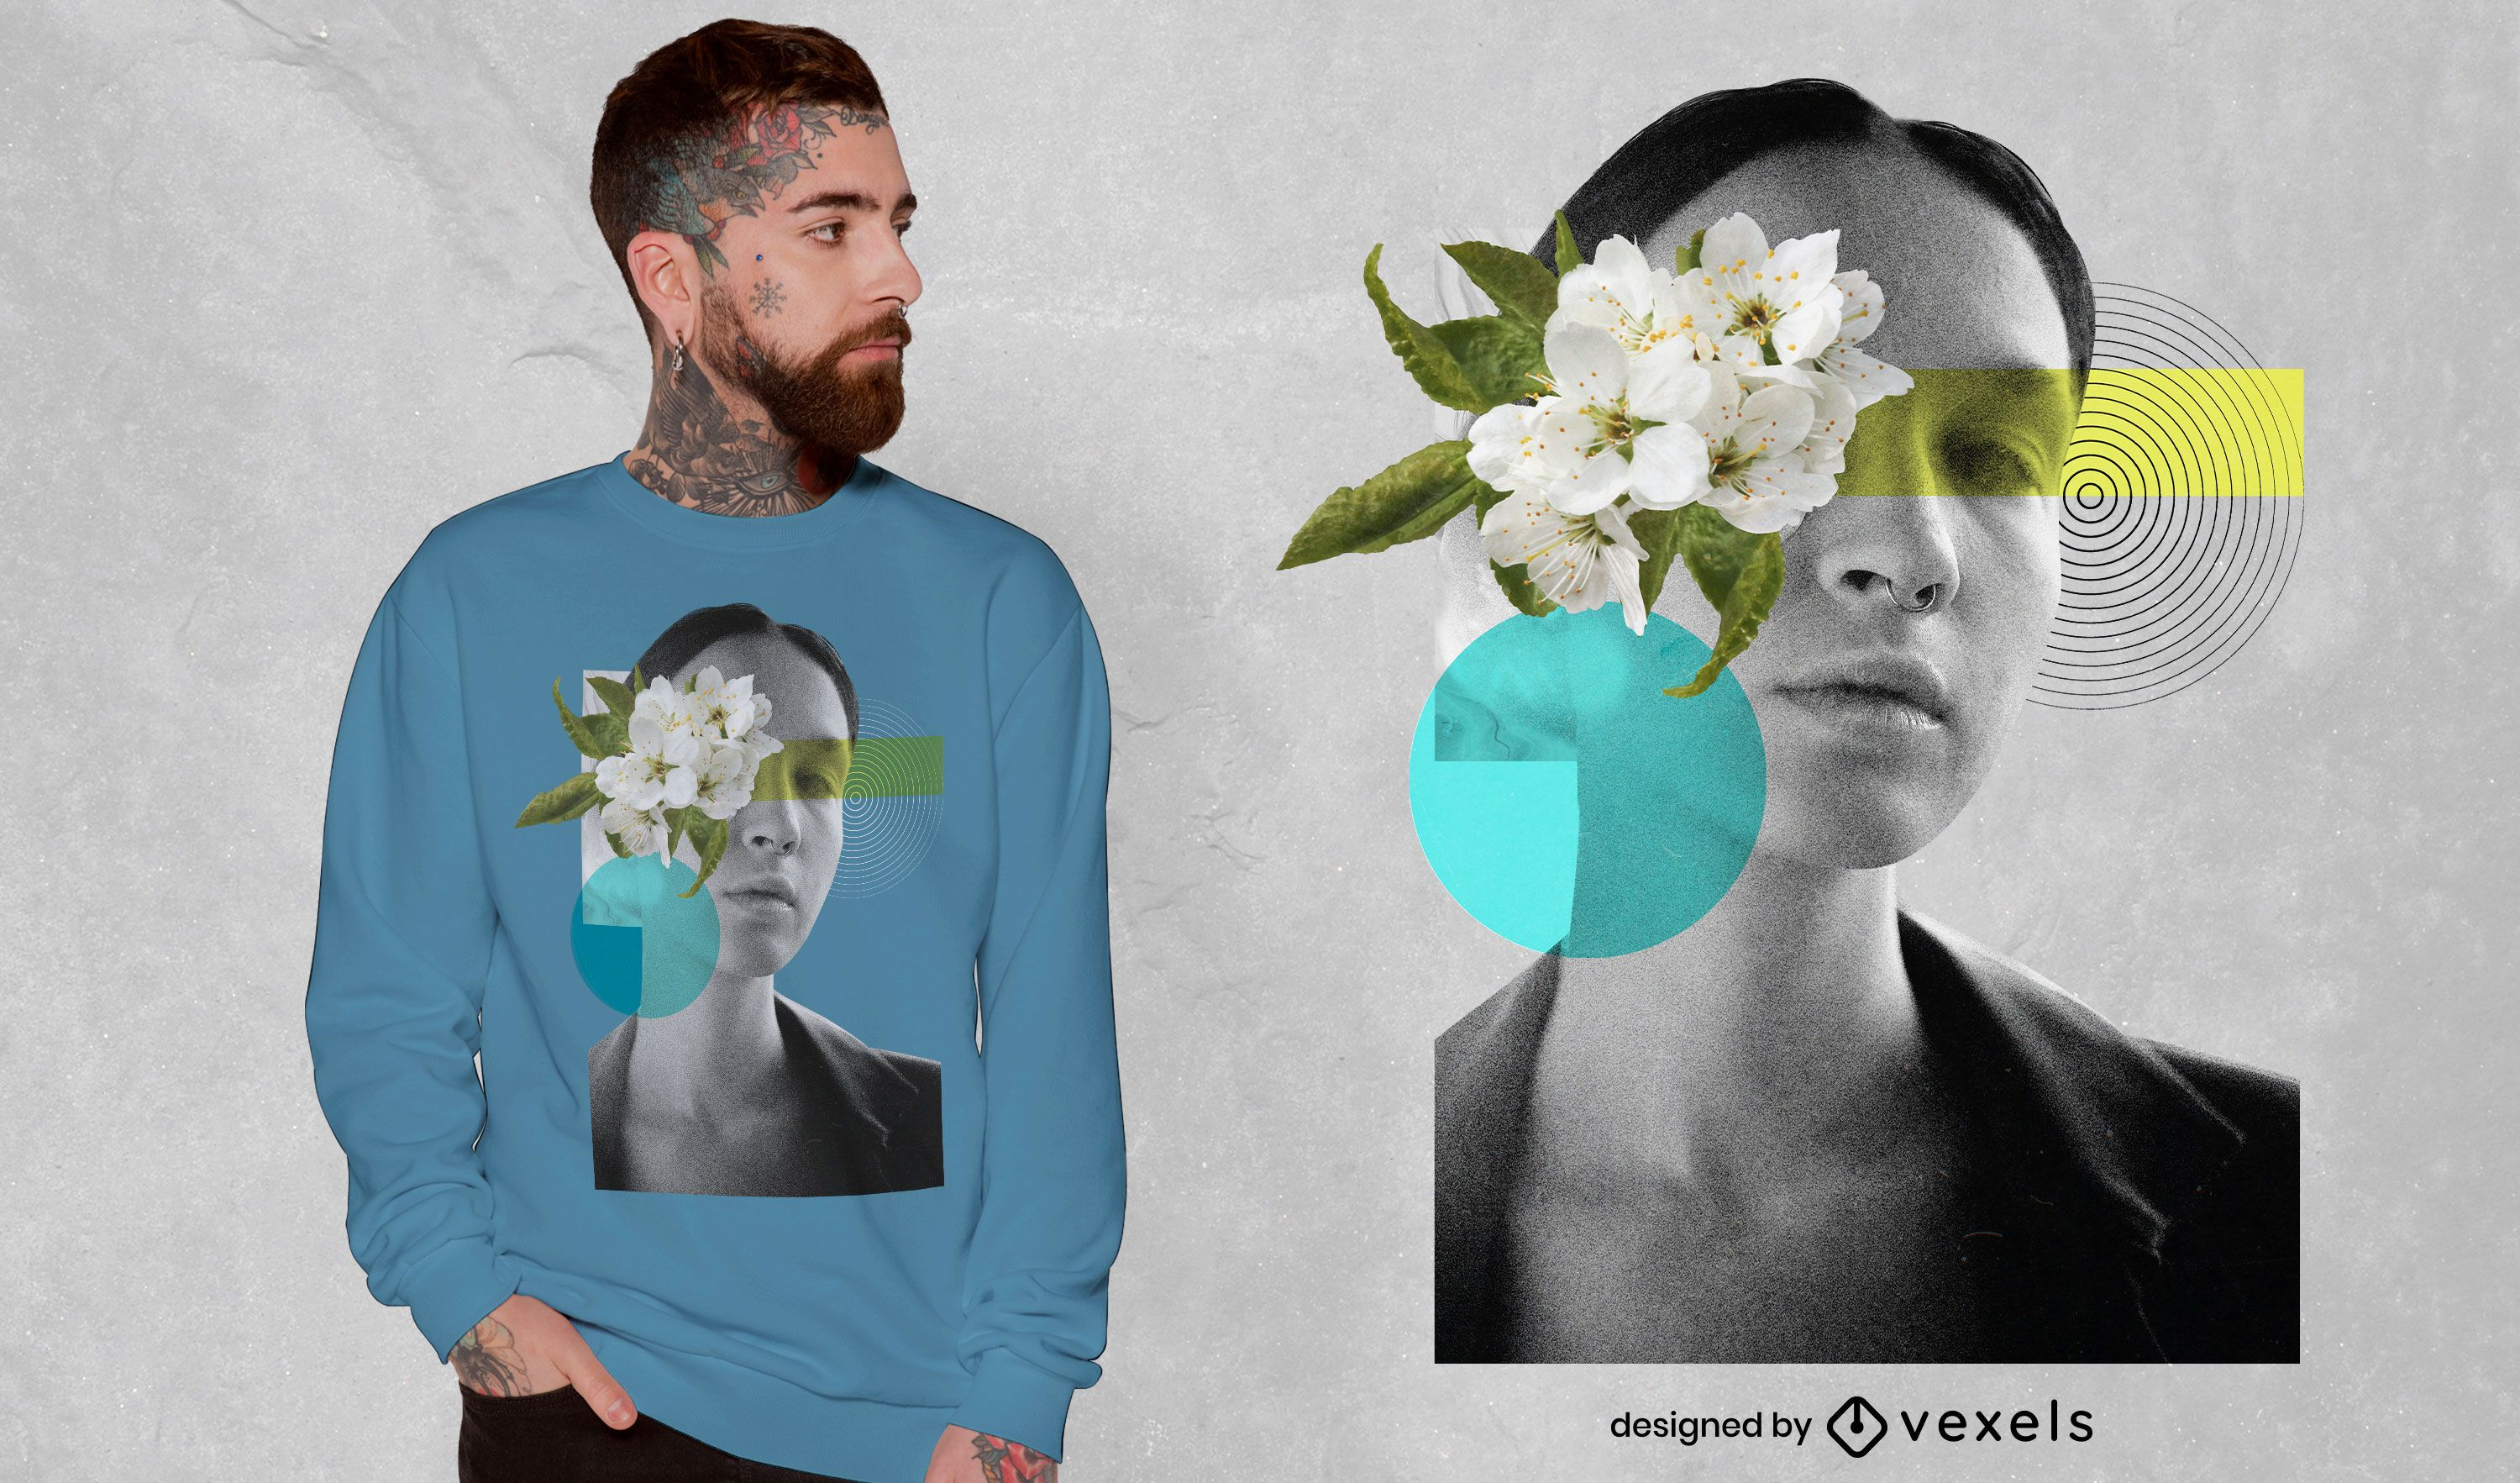 Camiseta mujer collage floral psd